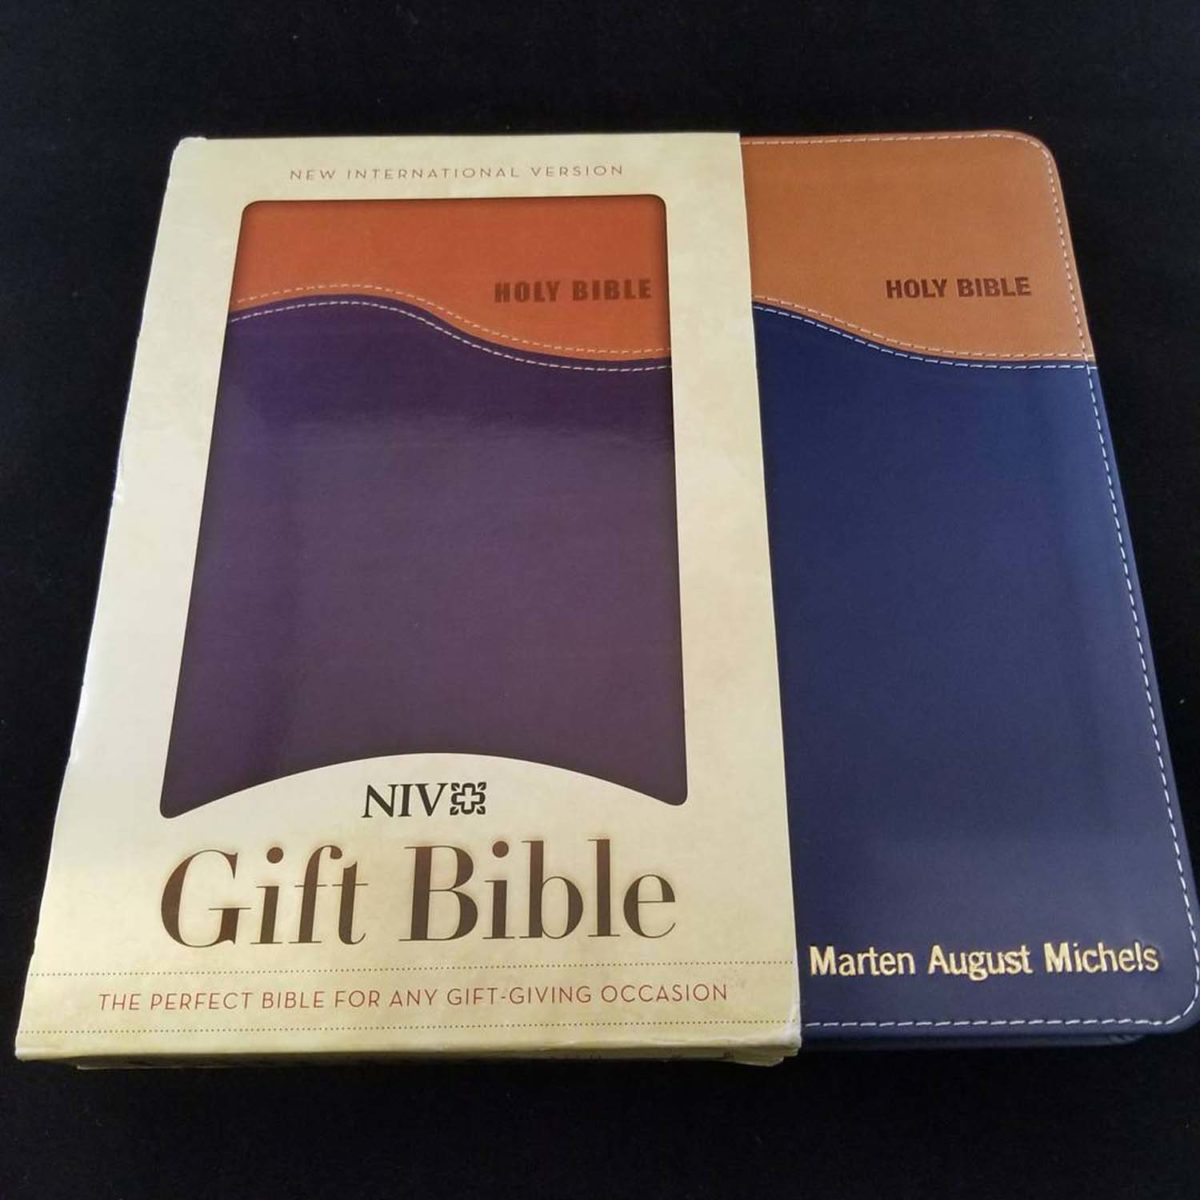 Gold or Silver or Rose Gold Leather Embossing on Bibles, Hymnals and Books